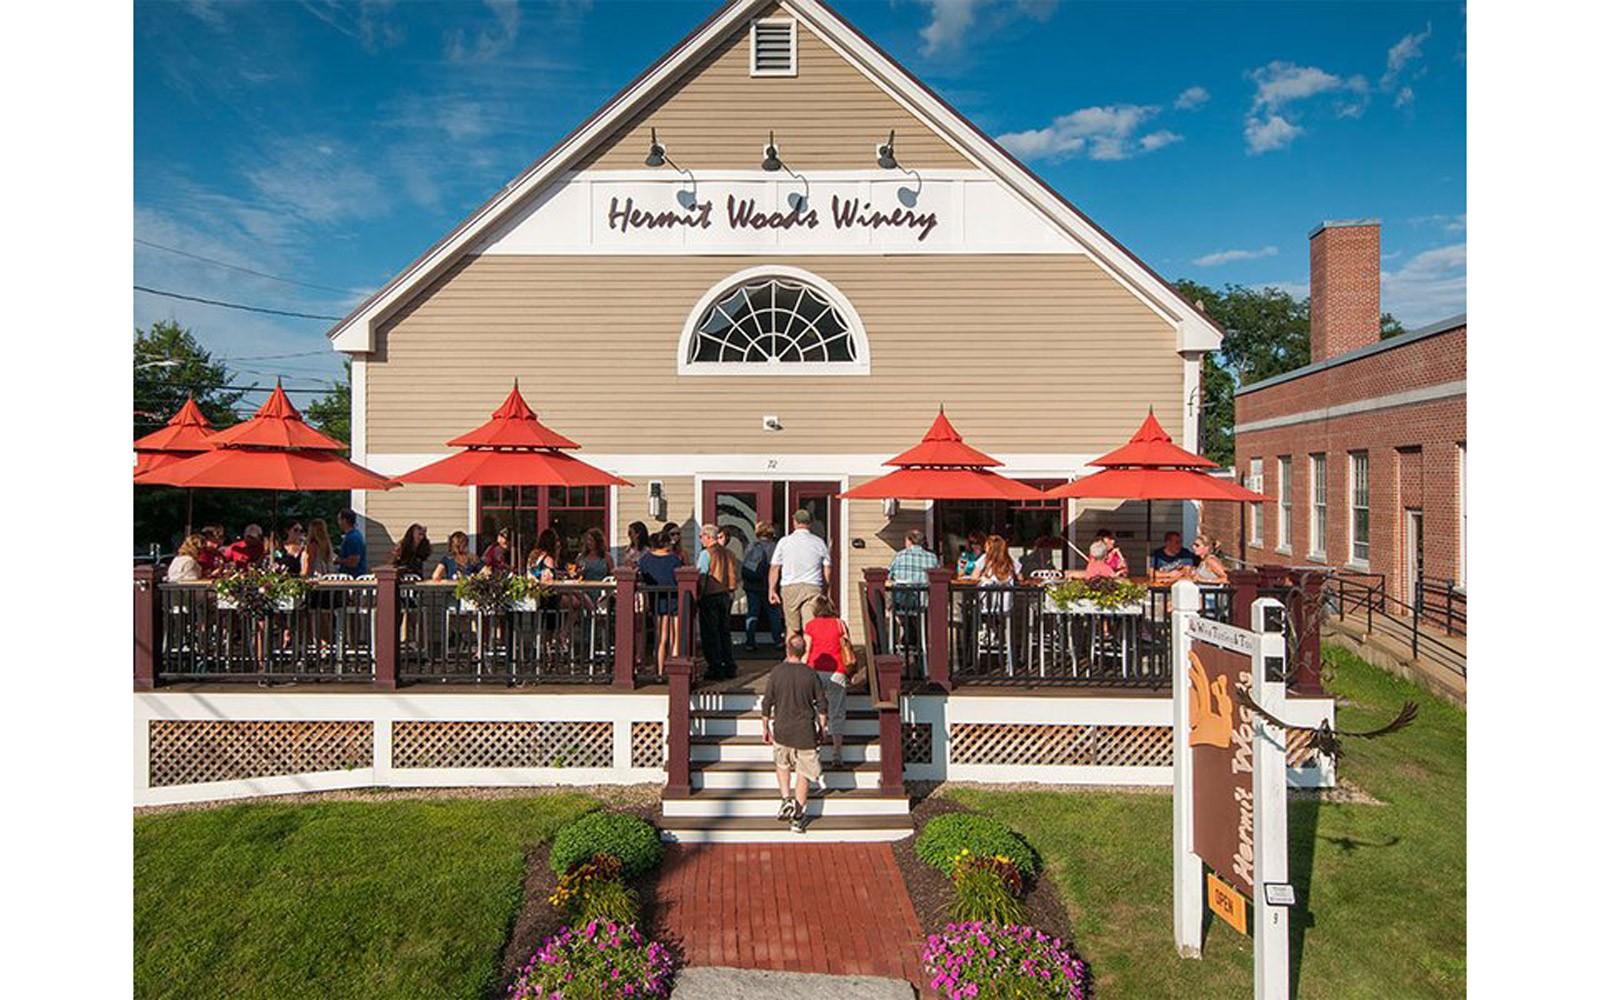 New Hampshire: Hermit Woods Winery